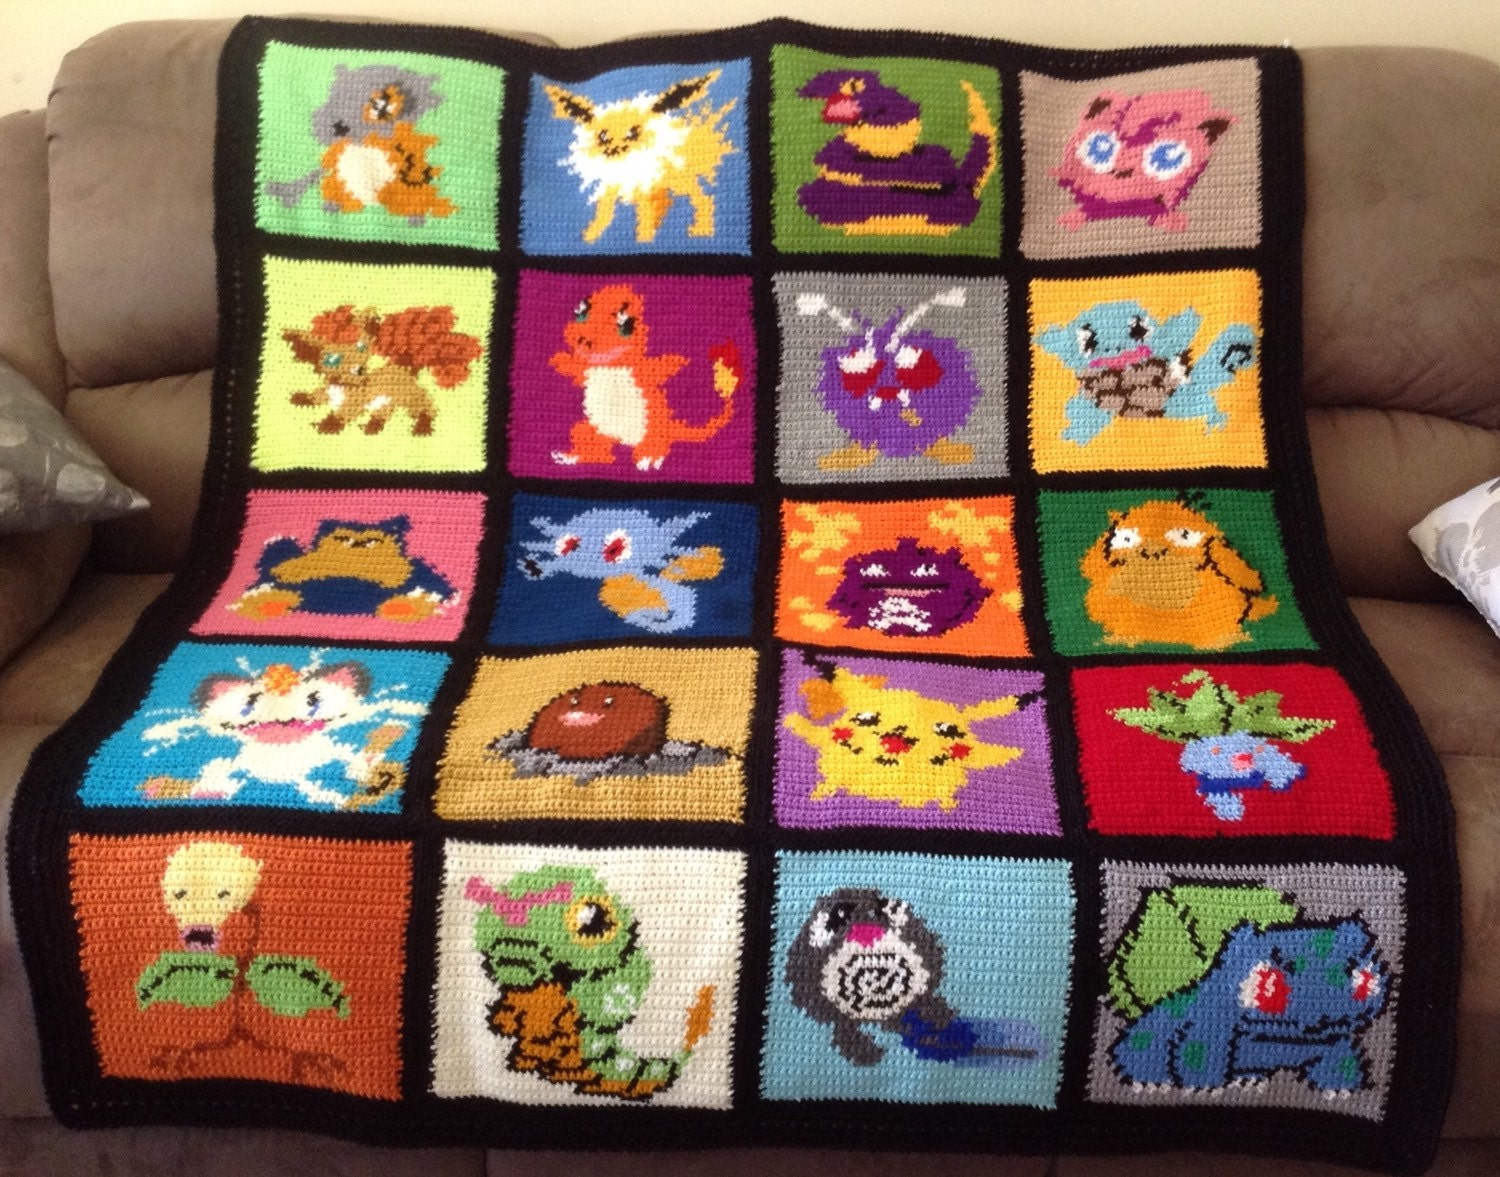 Crochet Patterns Pokemon Characters : Handmade Crochet Pokemon Characters Blanket